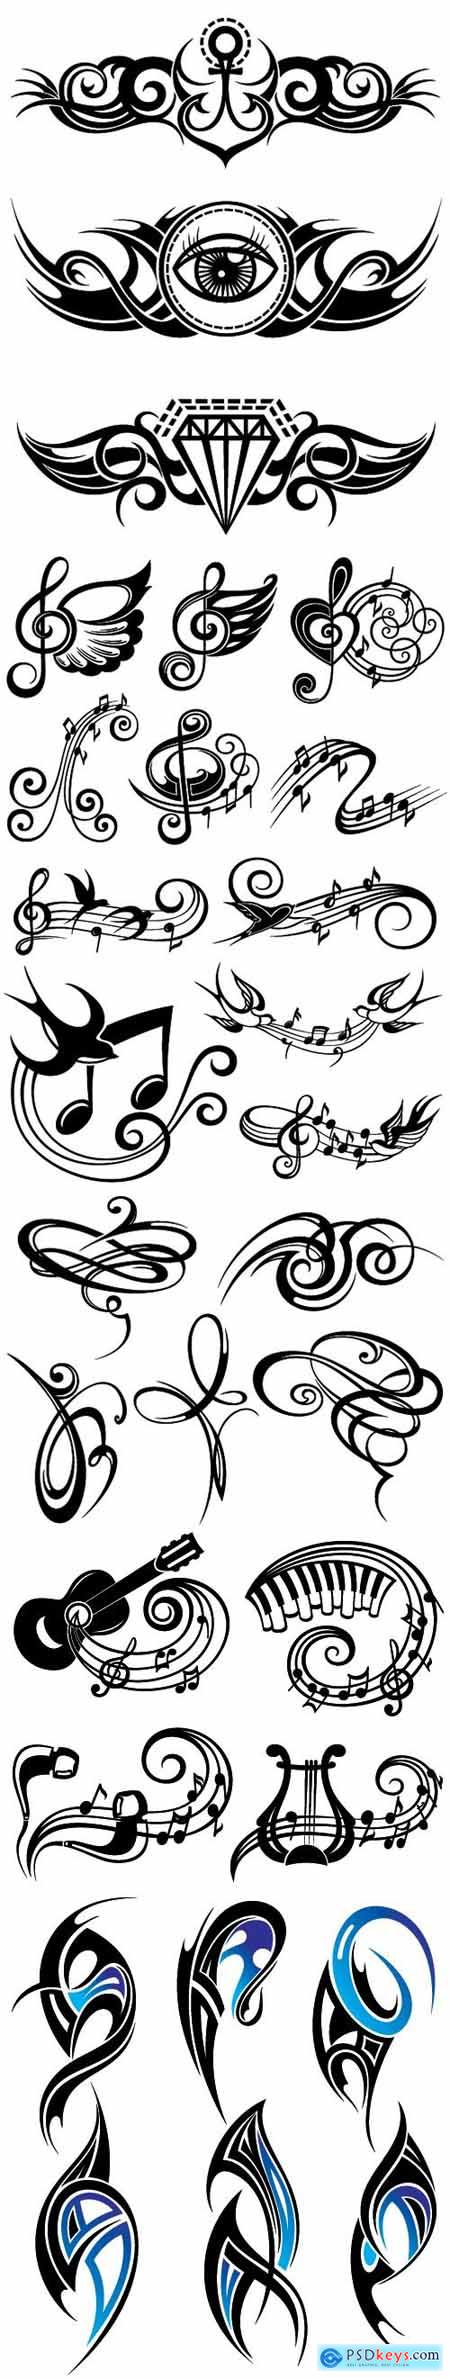 Tattoo patterns in vector